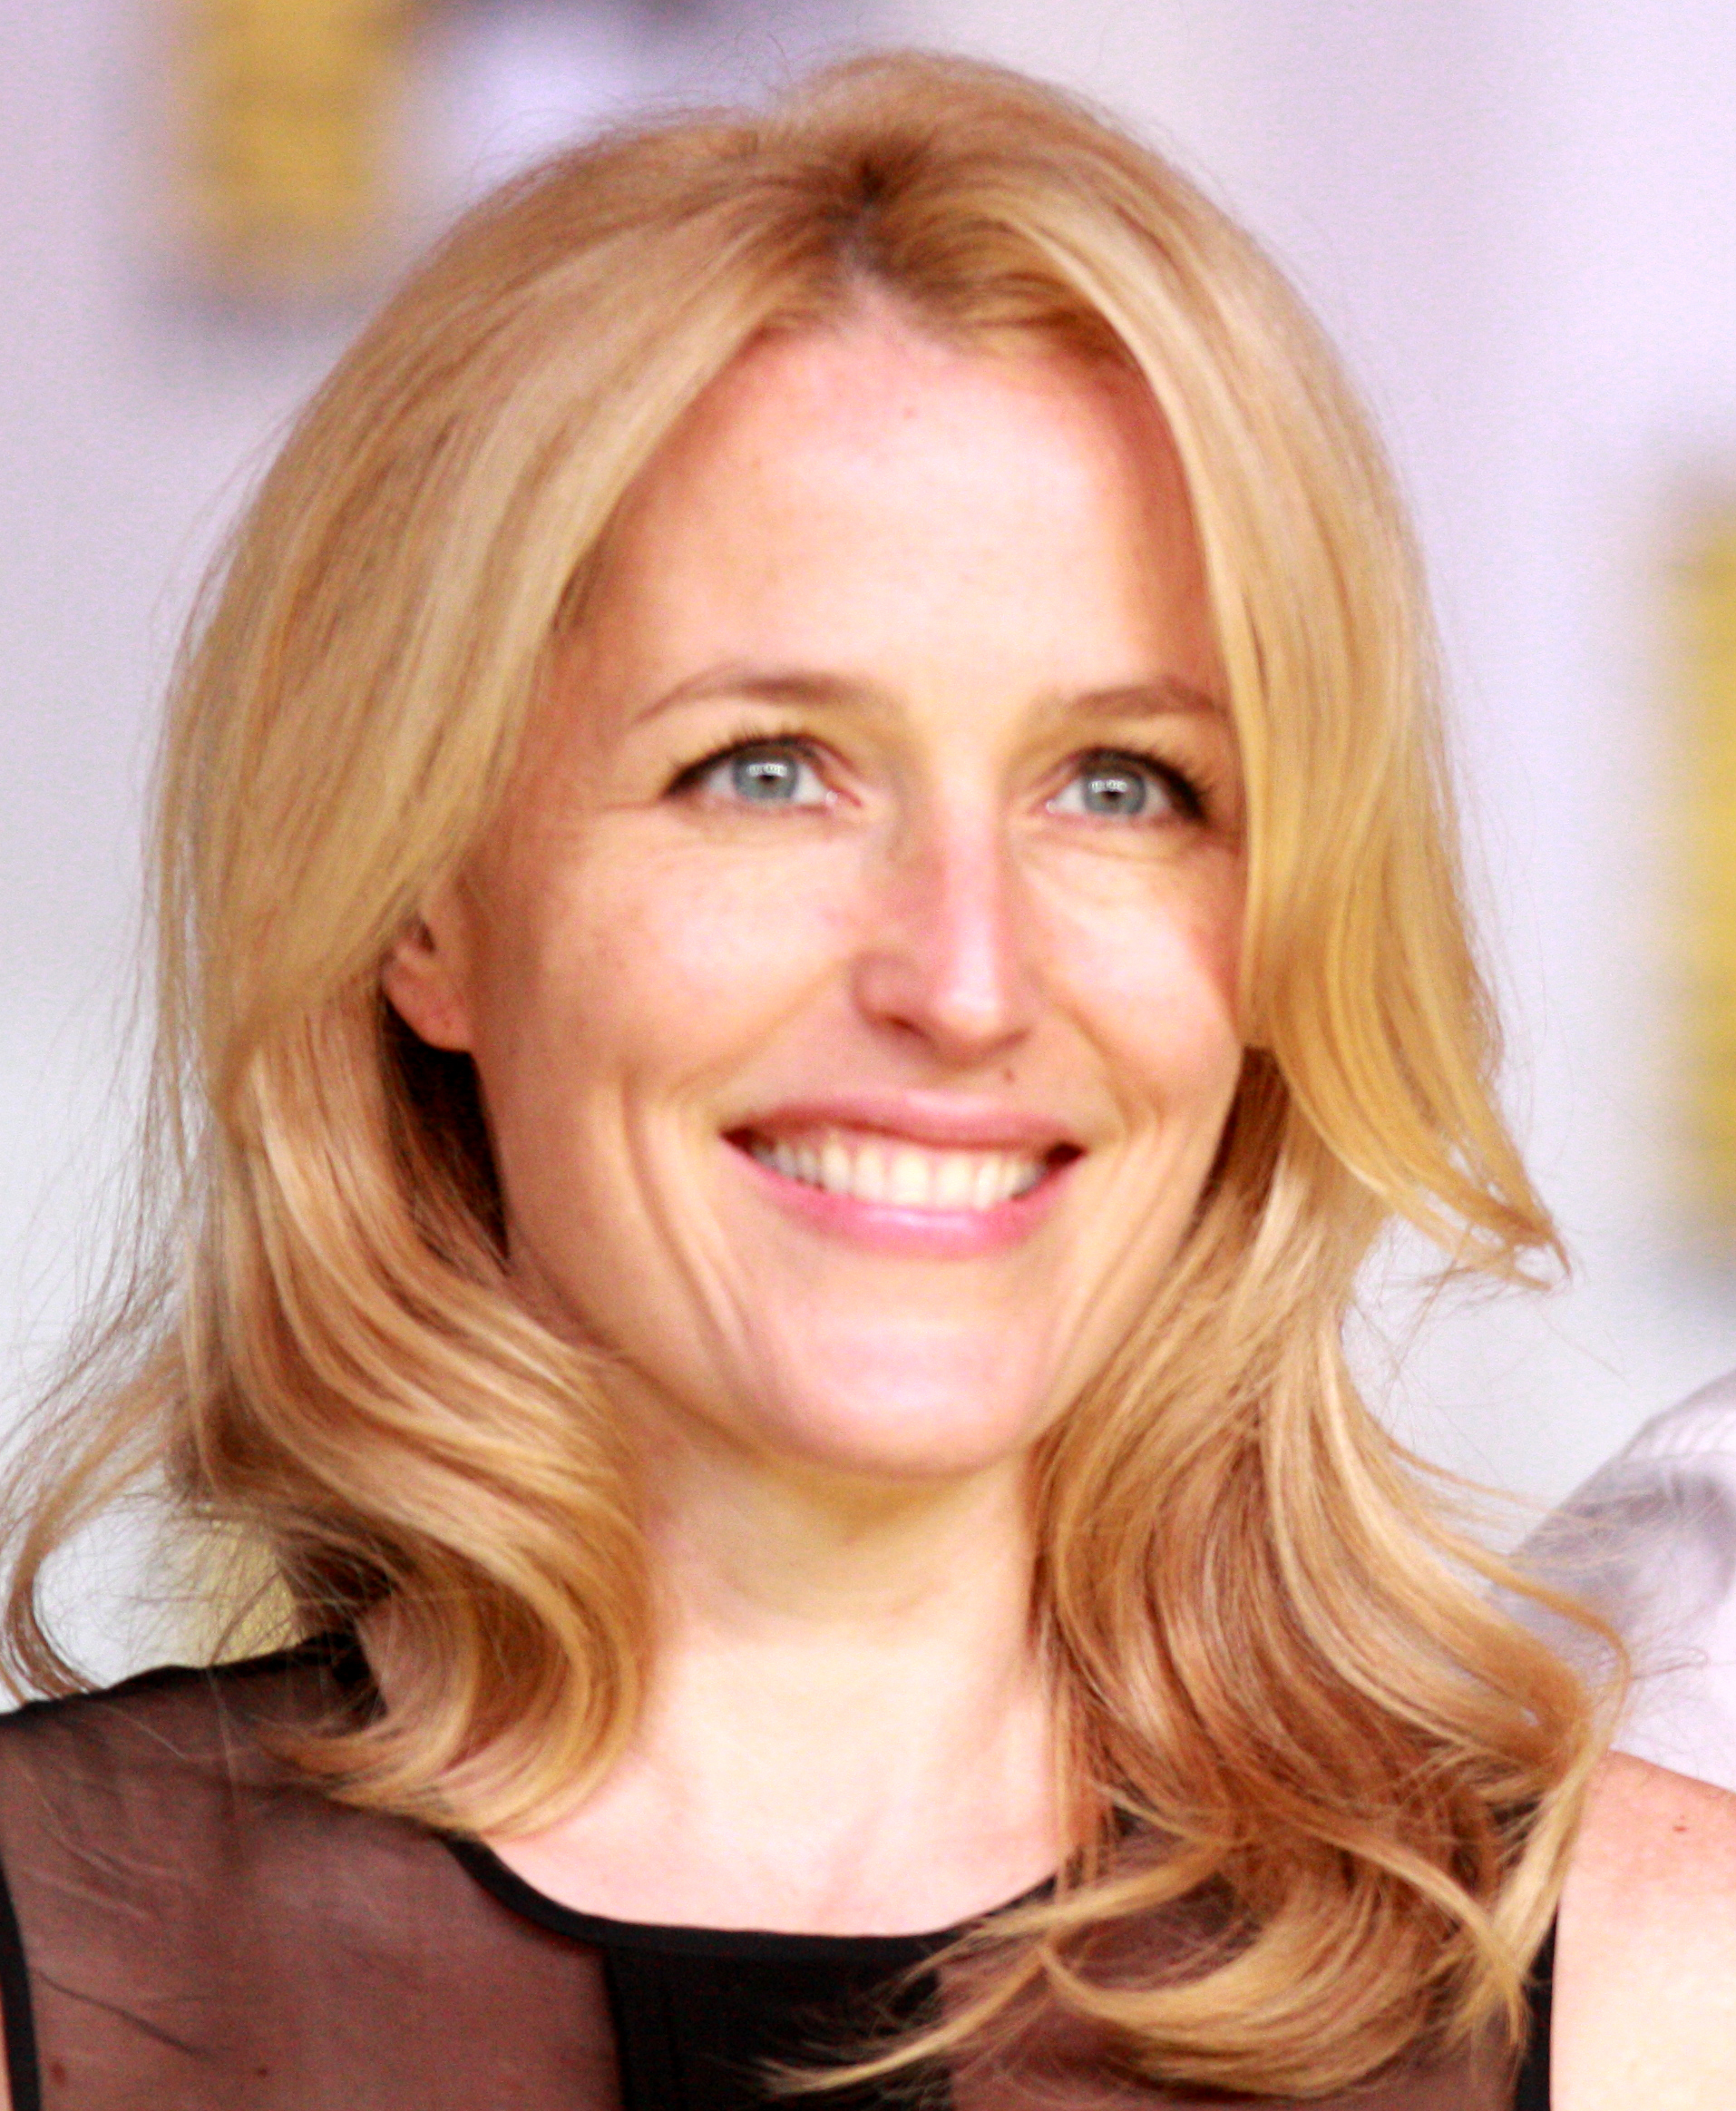 Gillian_Anderson_2013_(cropped).jpg